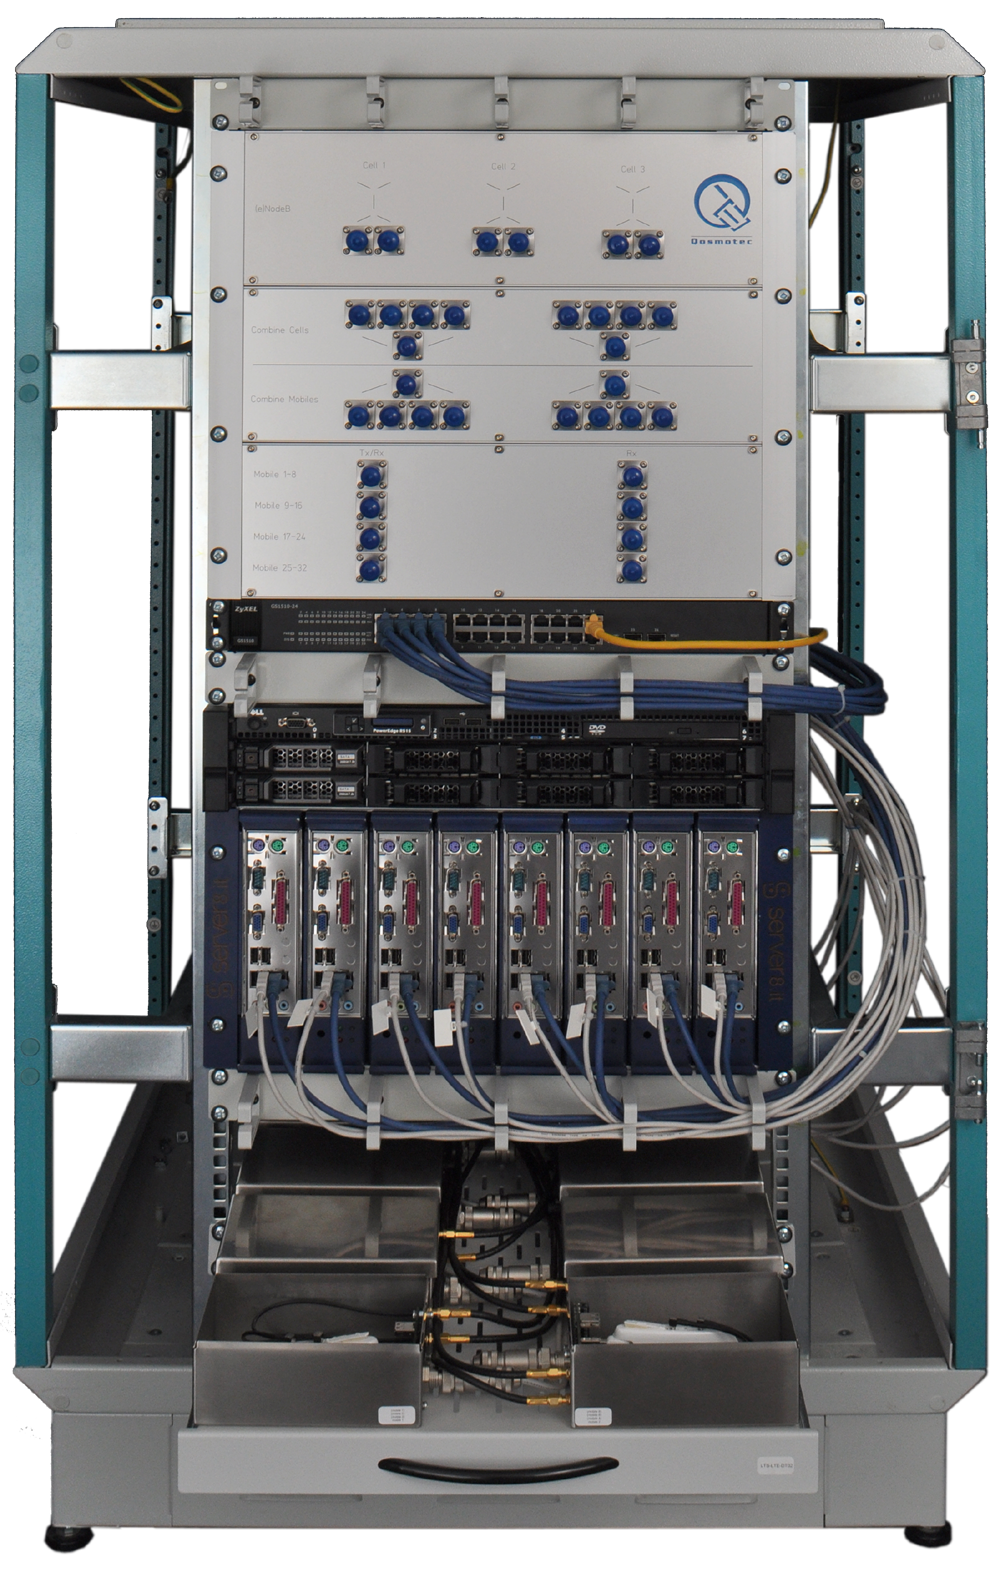 10 Years Experience In Mobile Network Testing American Hardware Mfg Home Electrical Cords Qosmotecs Lts Test Automation System As A Rack Setup To Control Large Numbers Of Ues